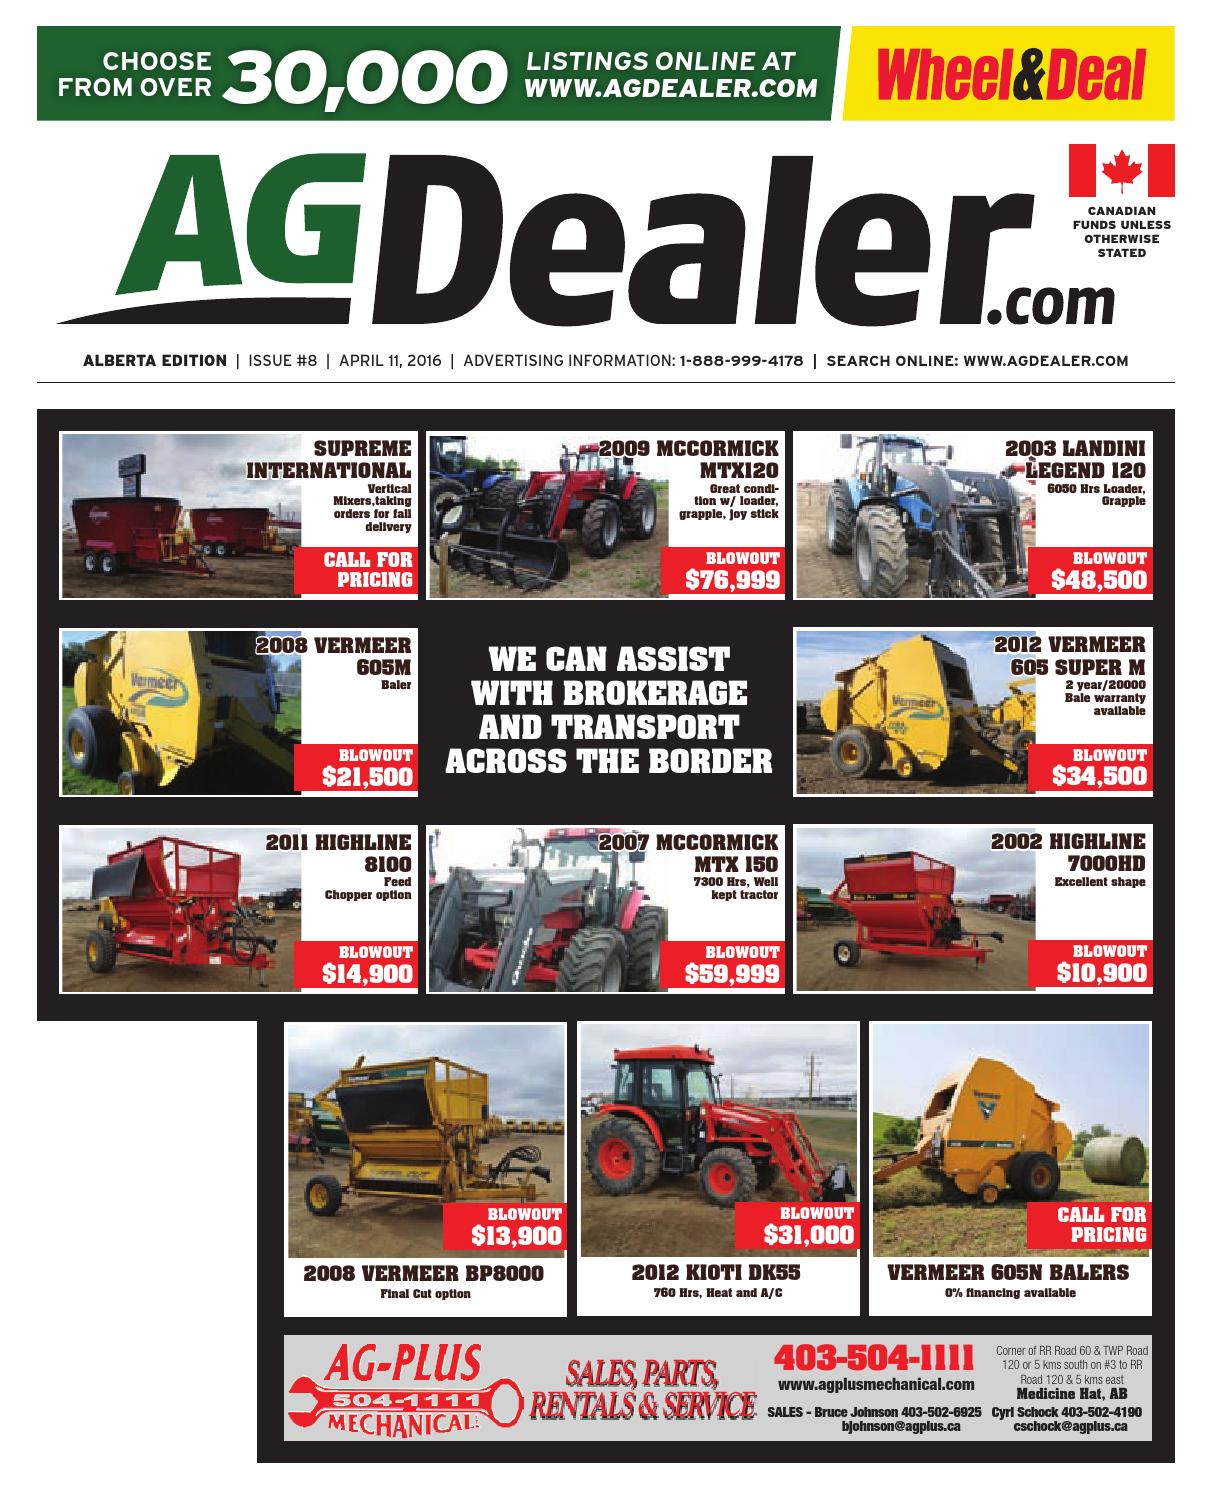 Wheel & Deal Alberta, April 11, 2016 by Farm Business Communications -  issuu